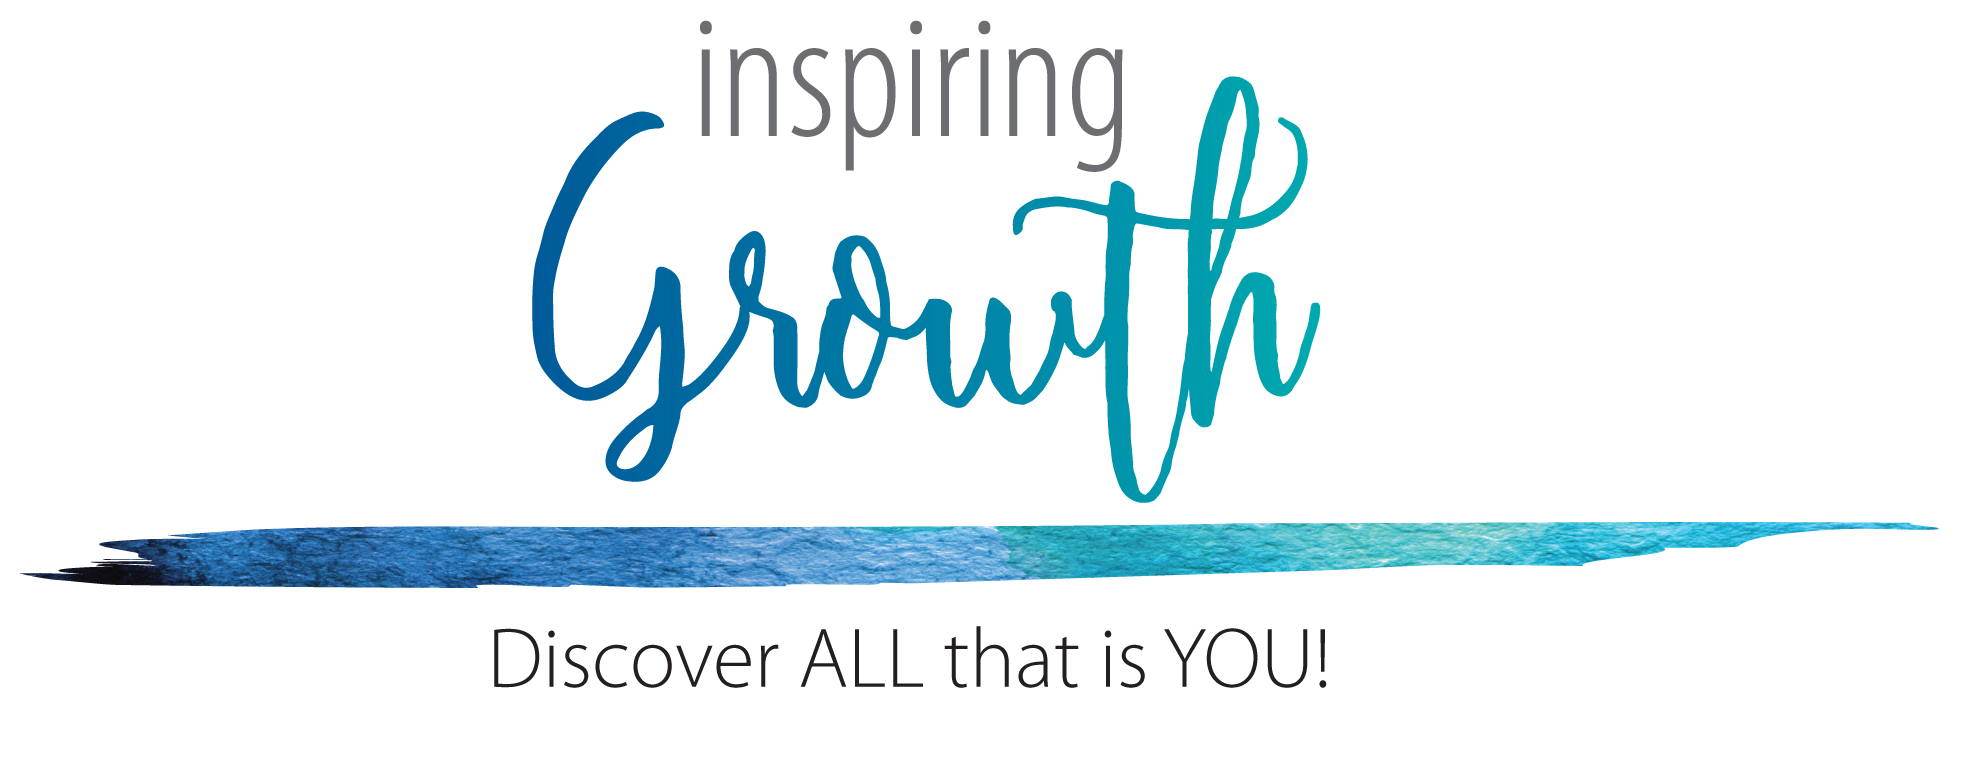 Growth_Logo&Tag